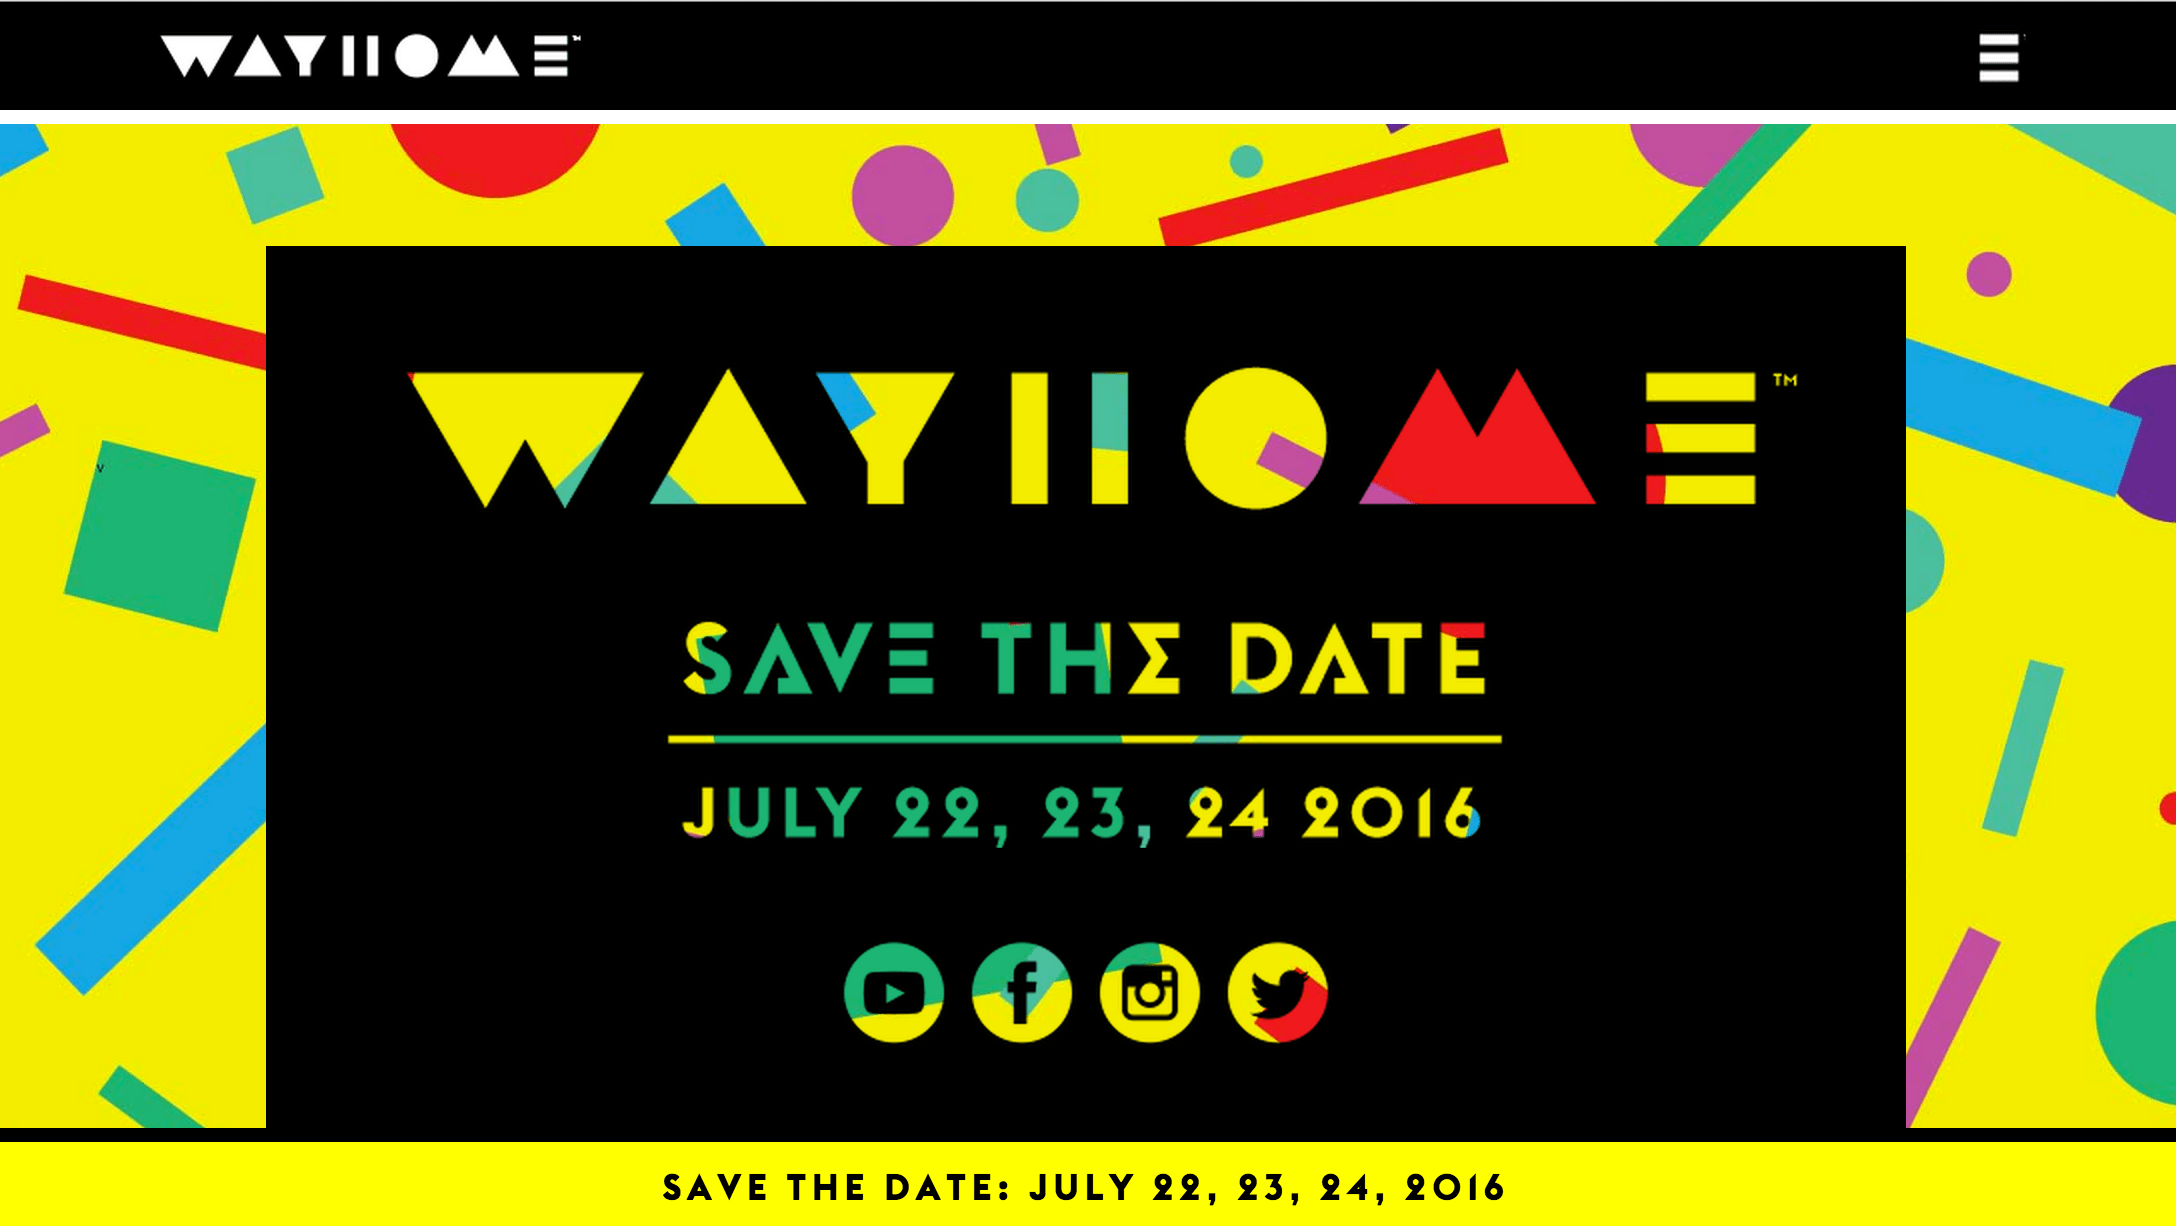 WayHome 2016 Announcement